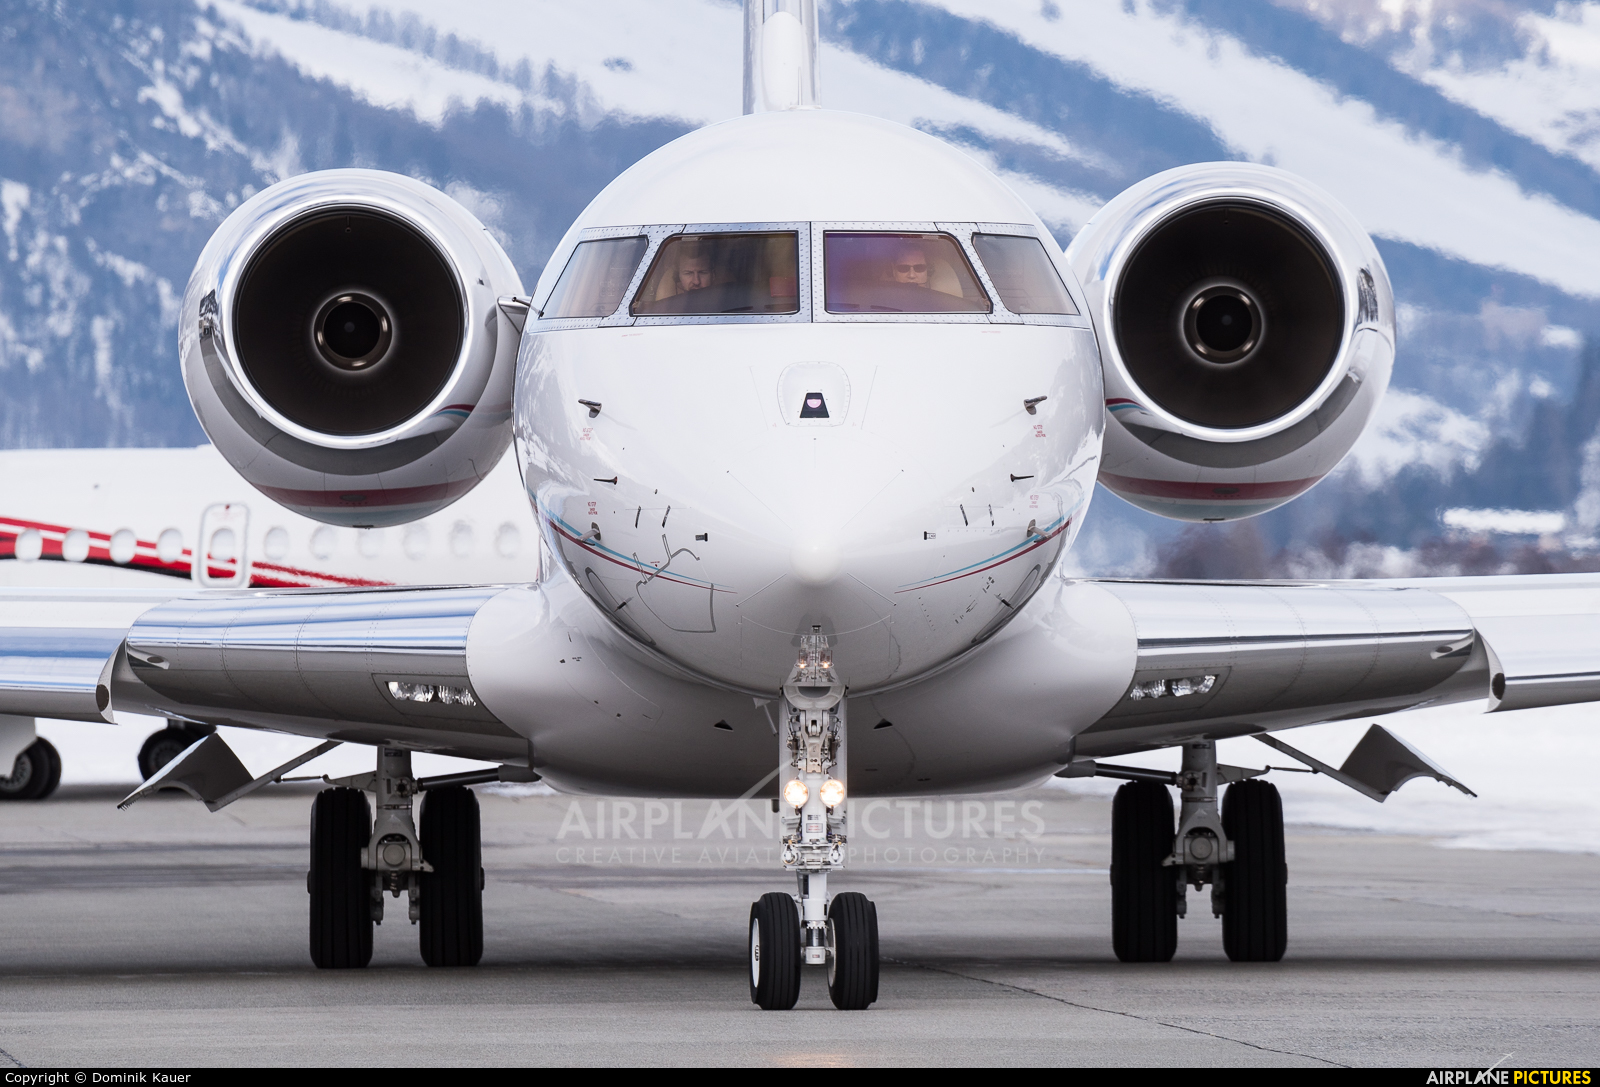 Execujet Europa AS HB-JRI aircraft at Samedan - Engadin